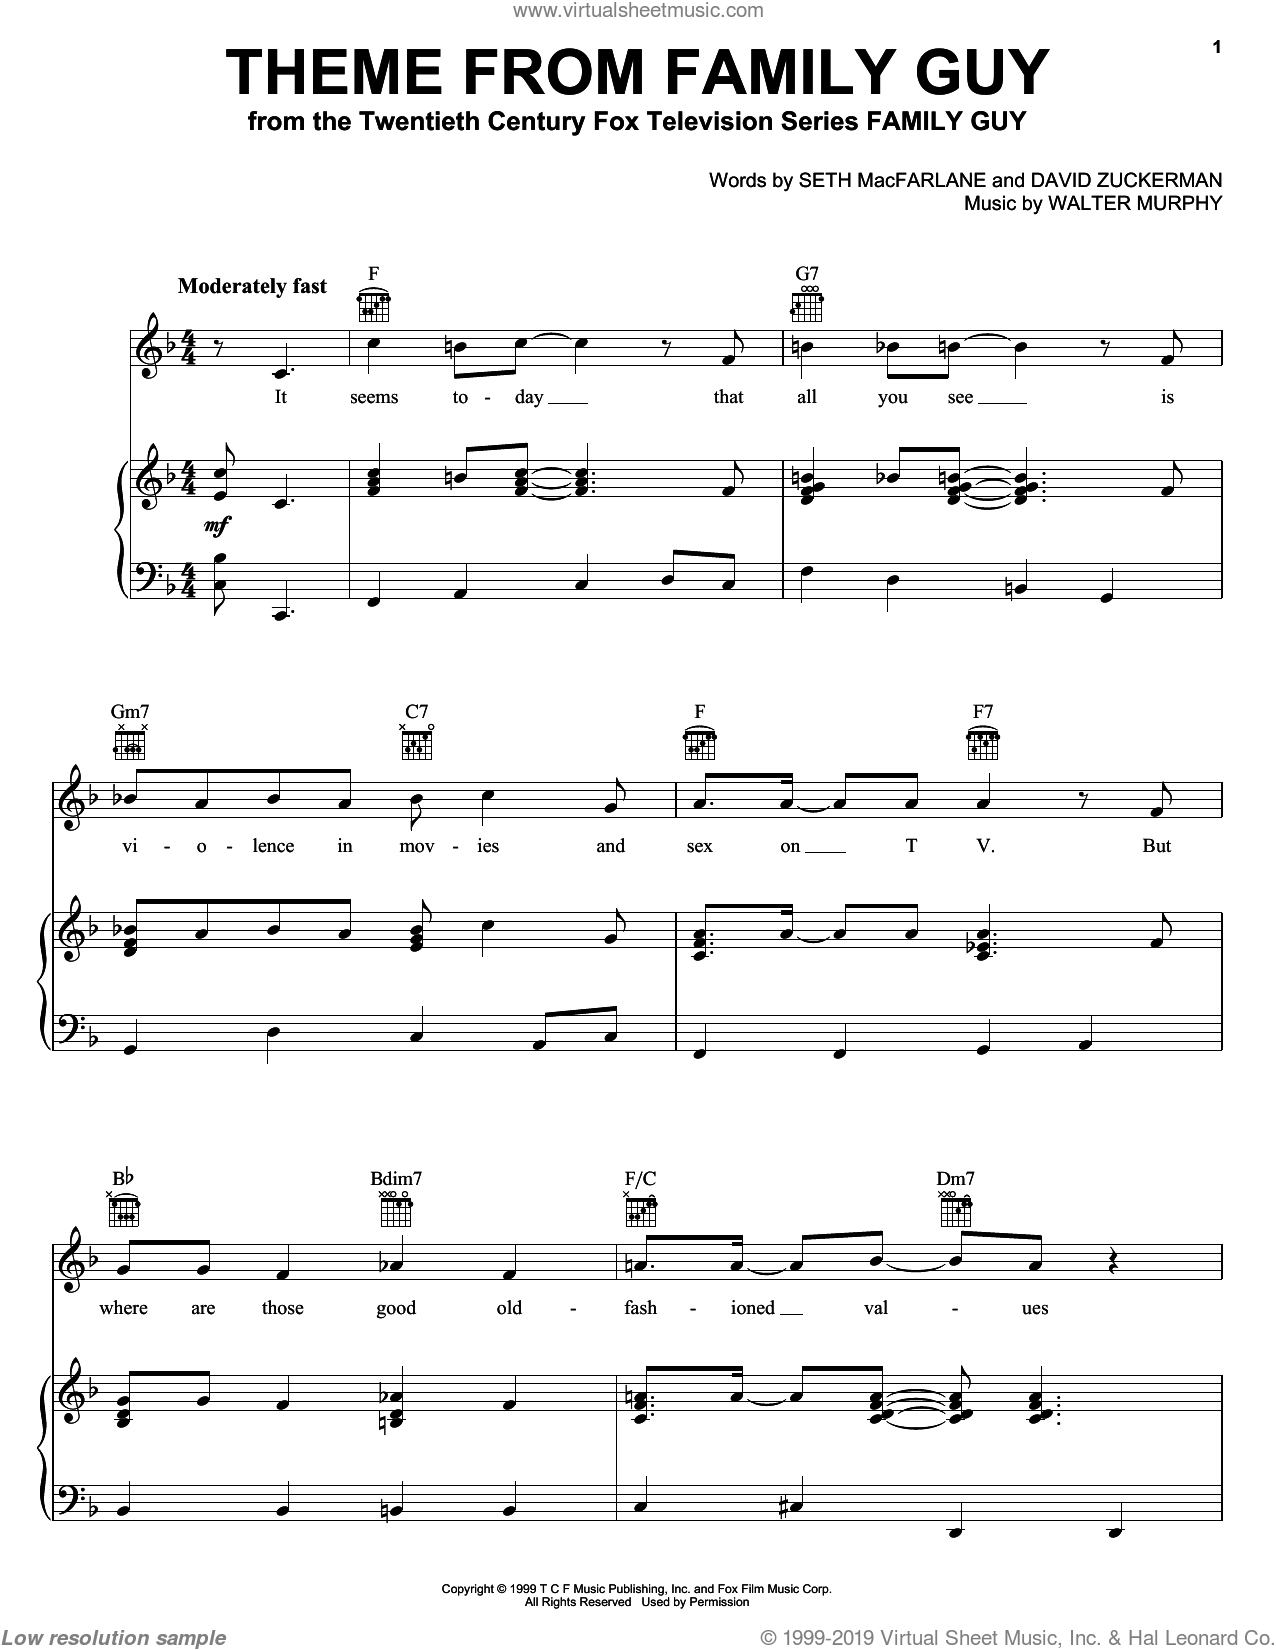 Theme From Family Guy sheet music for voice, piano or guitar by Seth MacFarlane and Walter Murphy, intermediate. Score Image Preview.